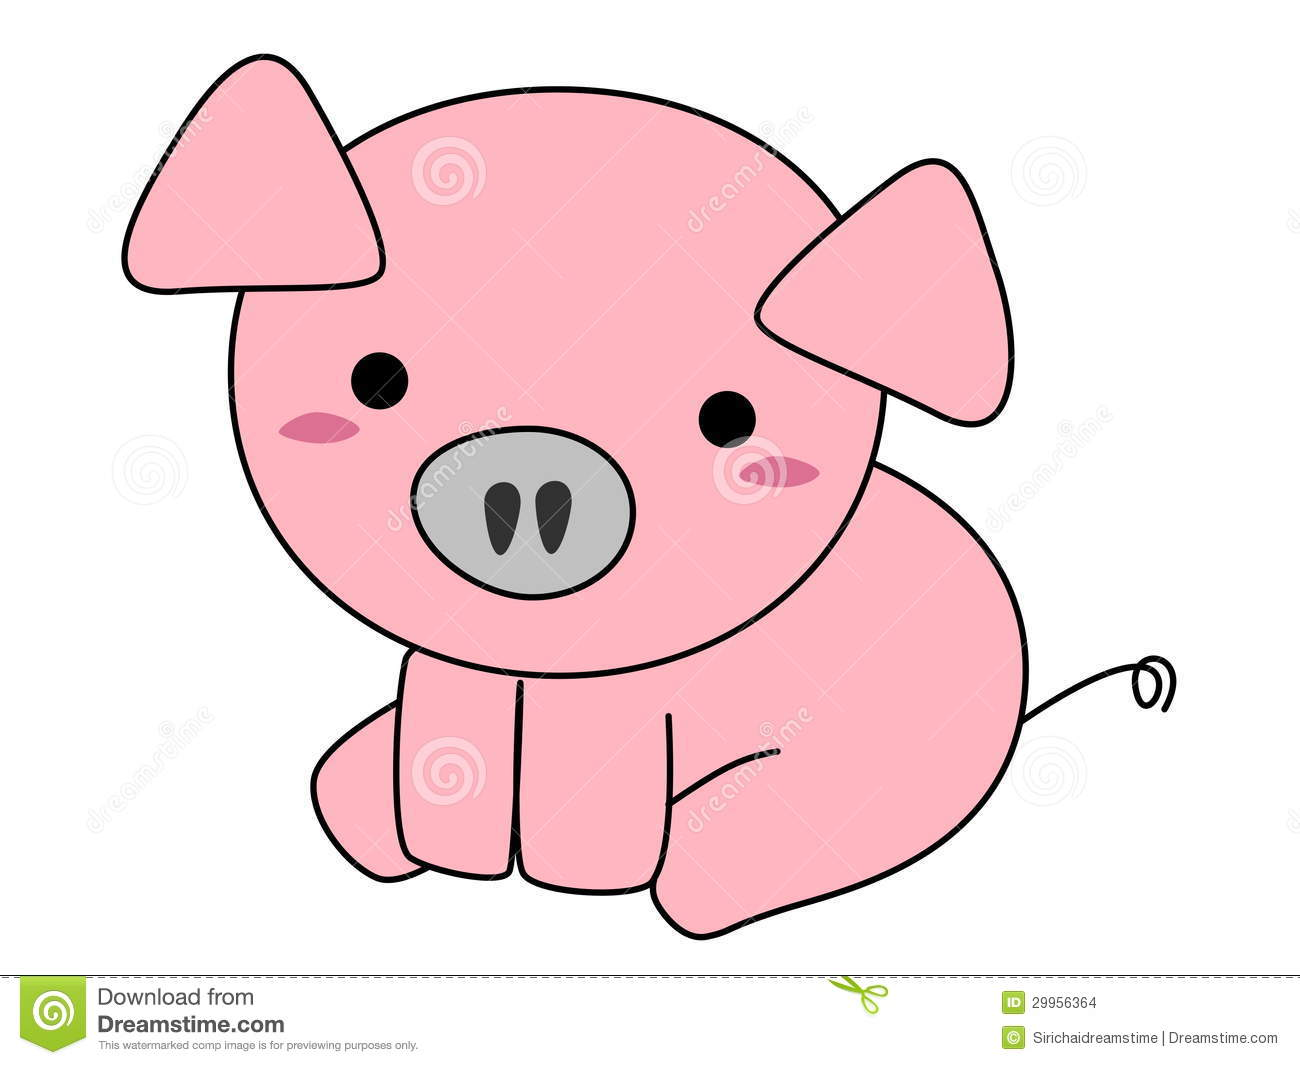 Pink pig cartoon isolated on white background.